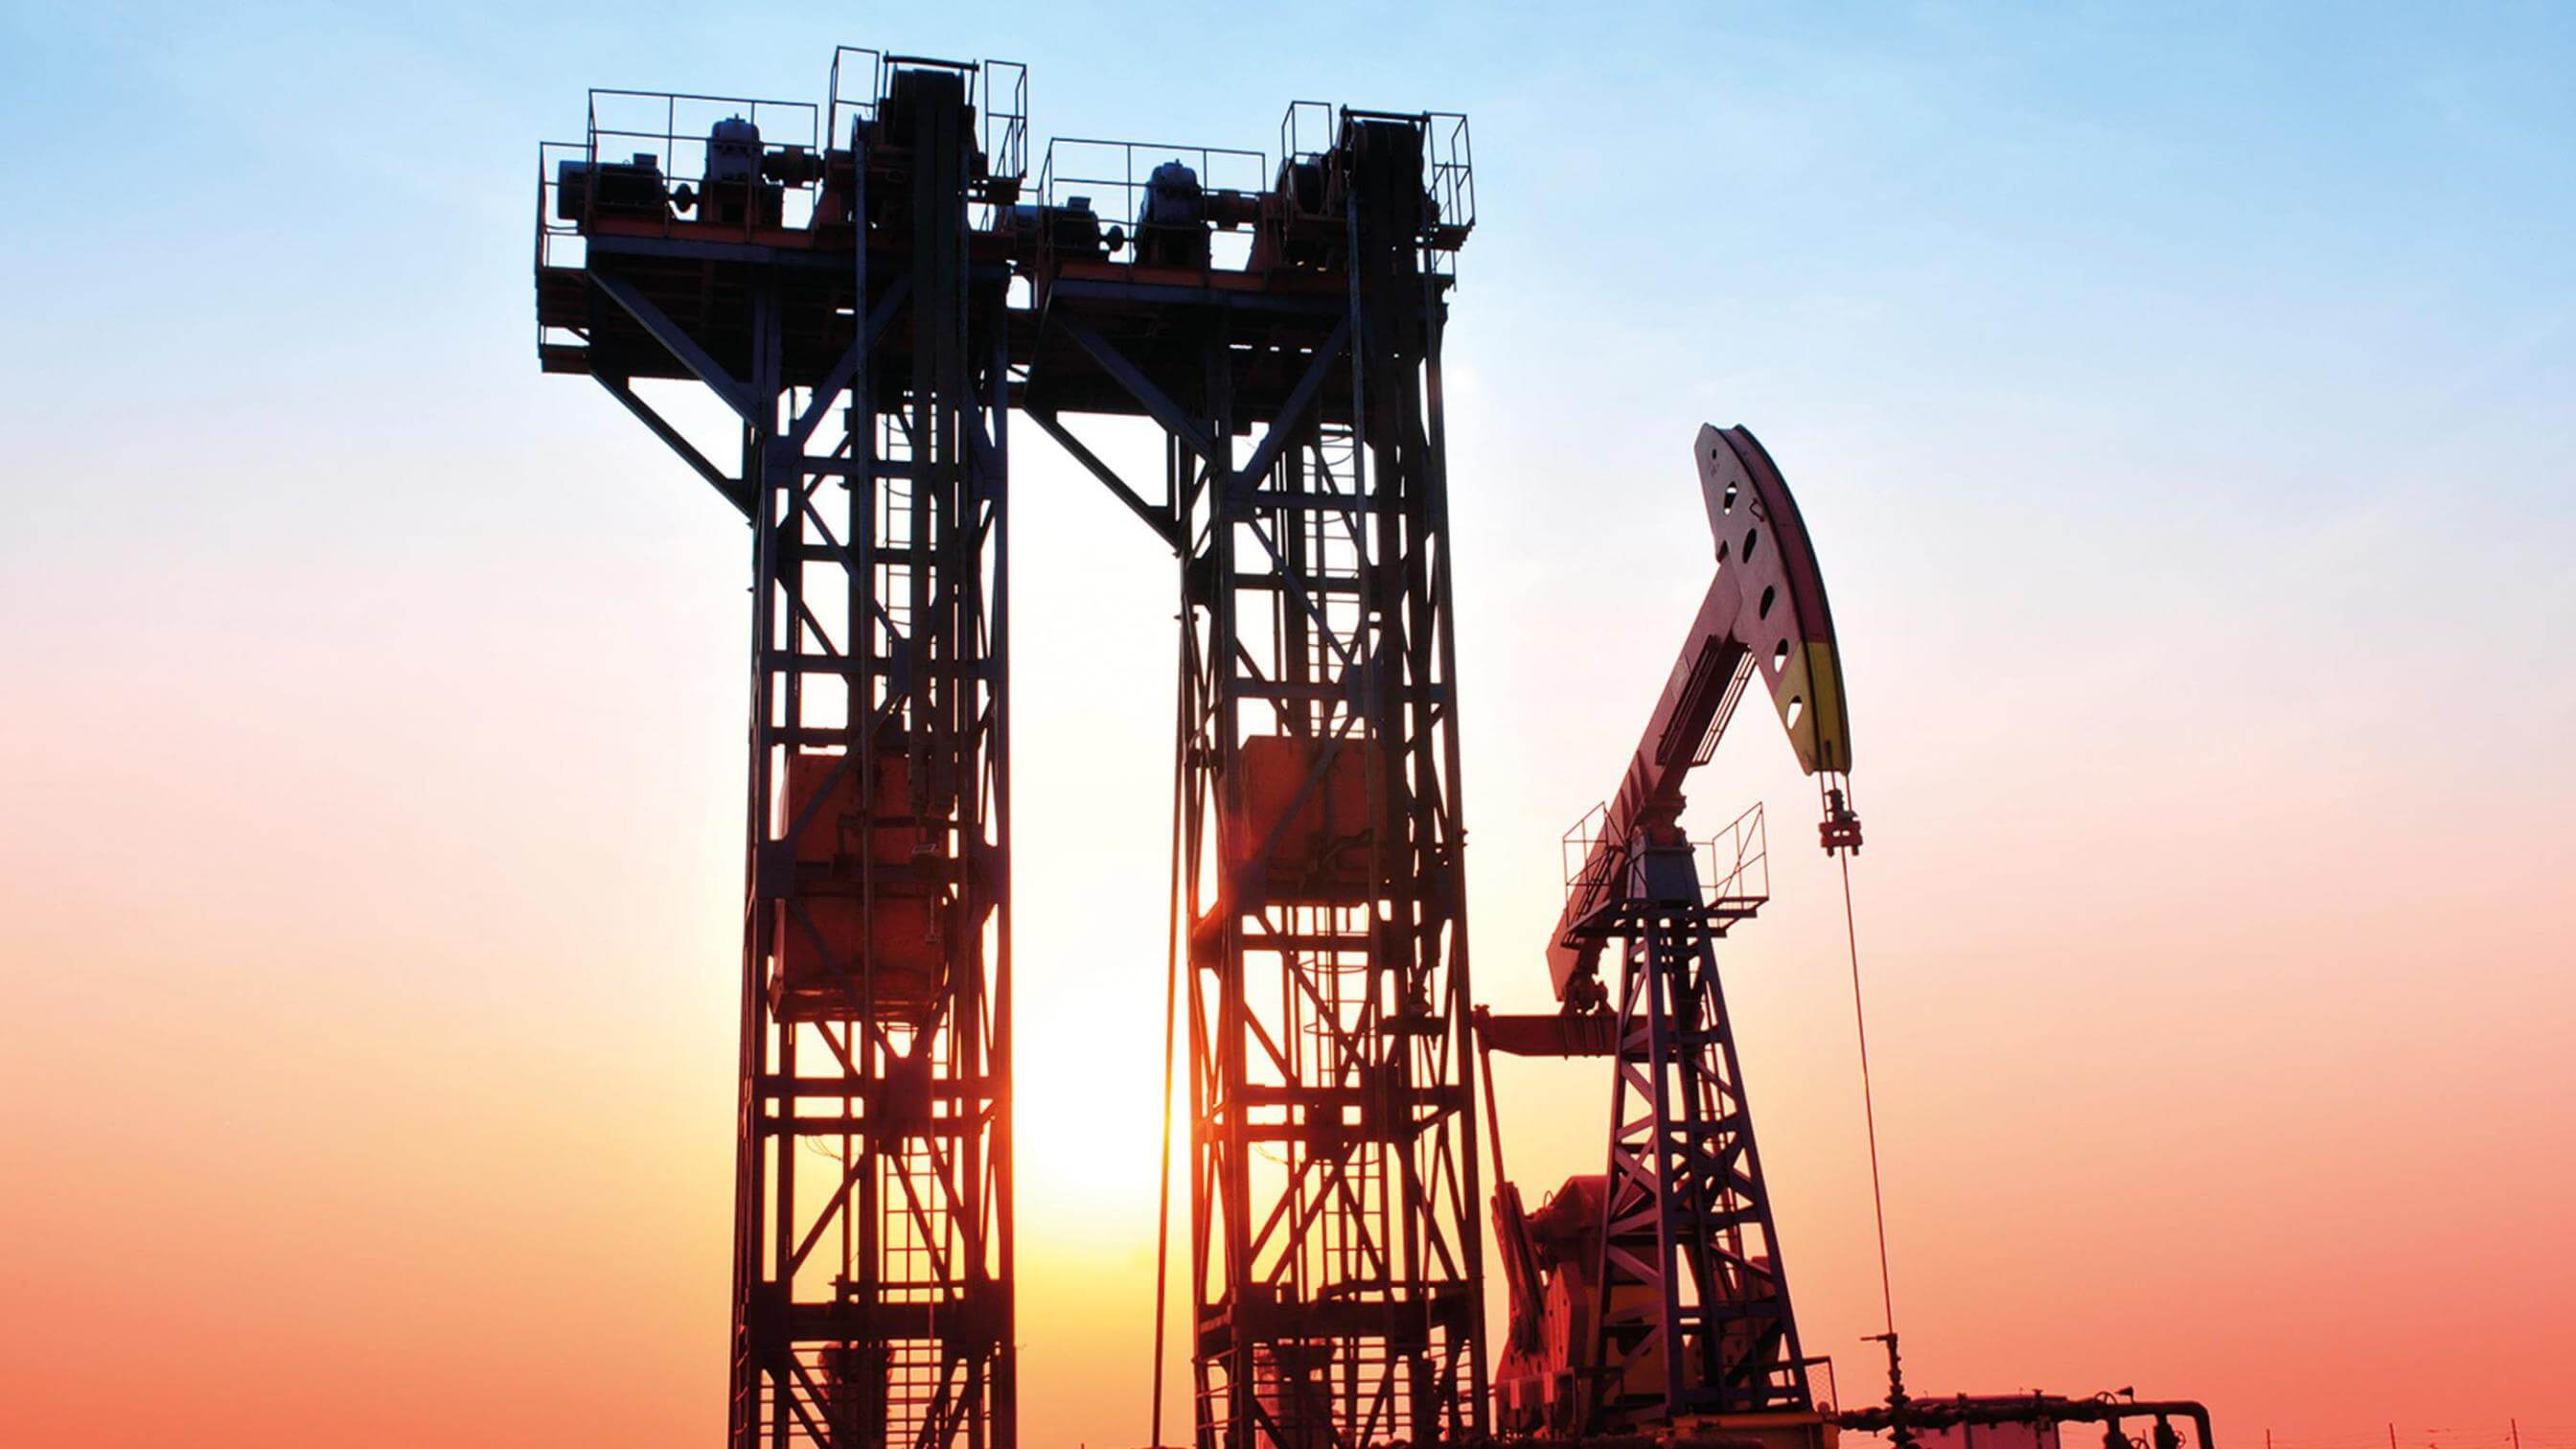 sunset oil gas well drilling